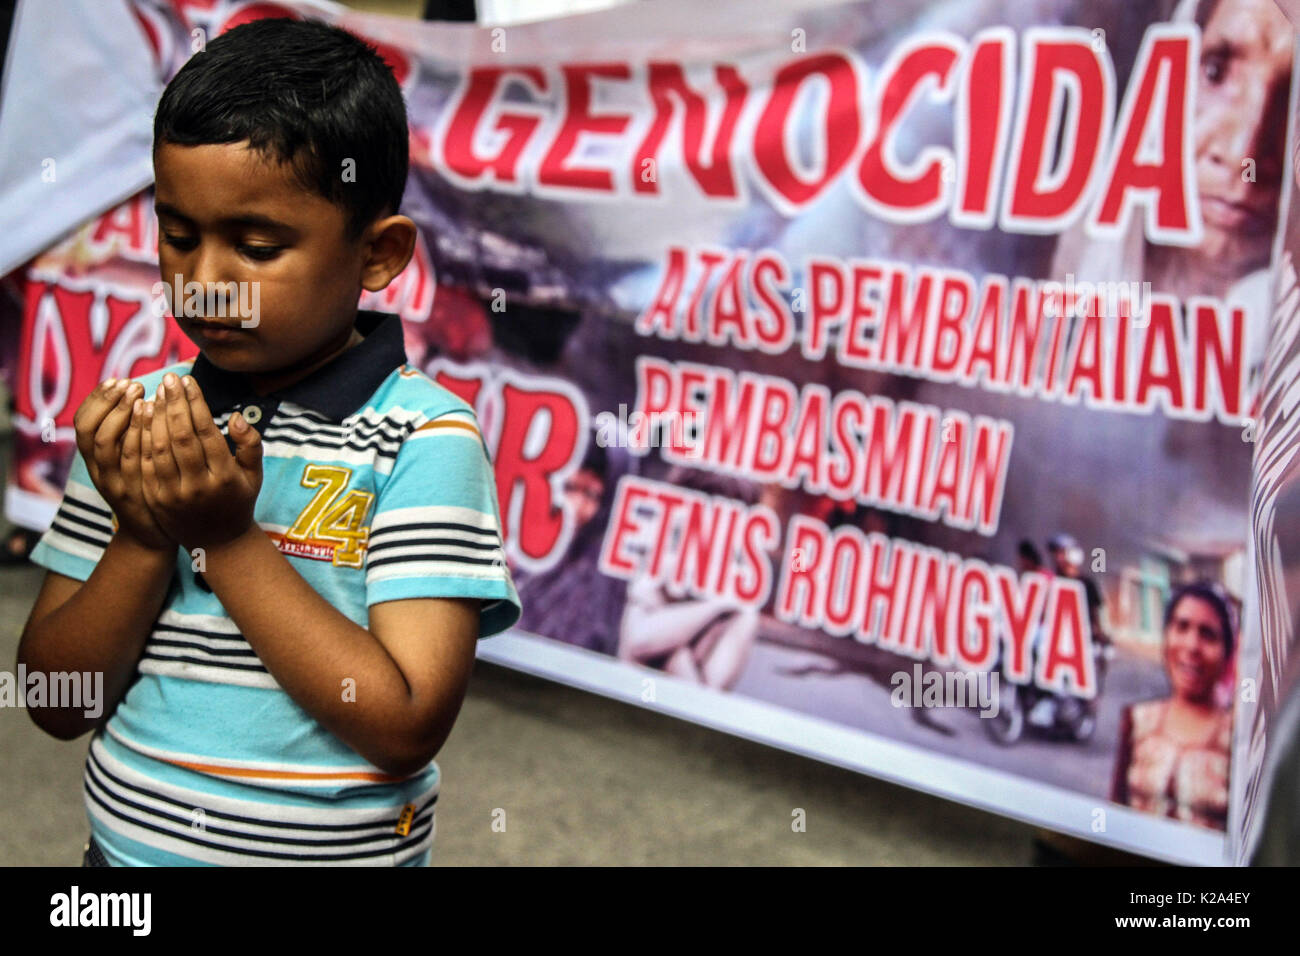 Medan, North Sumatra, Indonesia. 30th Aug, 2017. Hasmat Tullah, Rohingya-Indonesia Muslim refugees youths in a demonstration of solidarity against the persecution of their citizens, outside the council building in Medan on Aug 30, 2017, Indonesia. Urgent protesters United Nations (UN) pressured the Myanmar government to solve the problem of slaughter of the Muslim community Rohingnya. Credit: Ivan Damanik/ZUMA Wire/Alamy Live News Stock Photo